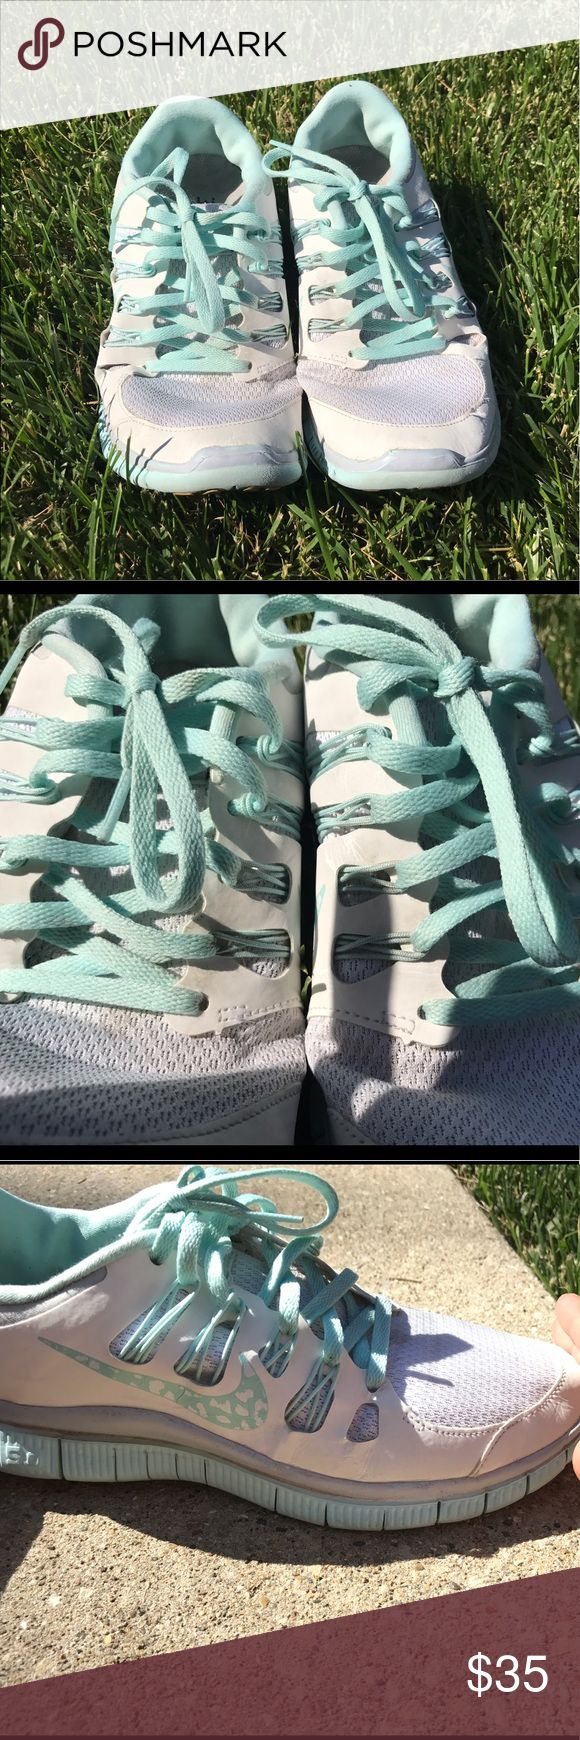 8.5 Nike Tiffany blue free run 5.0 5.0 free run Tiffany blue Nike tennis shoes. Size 8.5 Nike Shoes Athletic Shoes